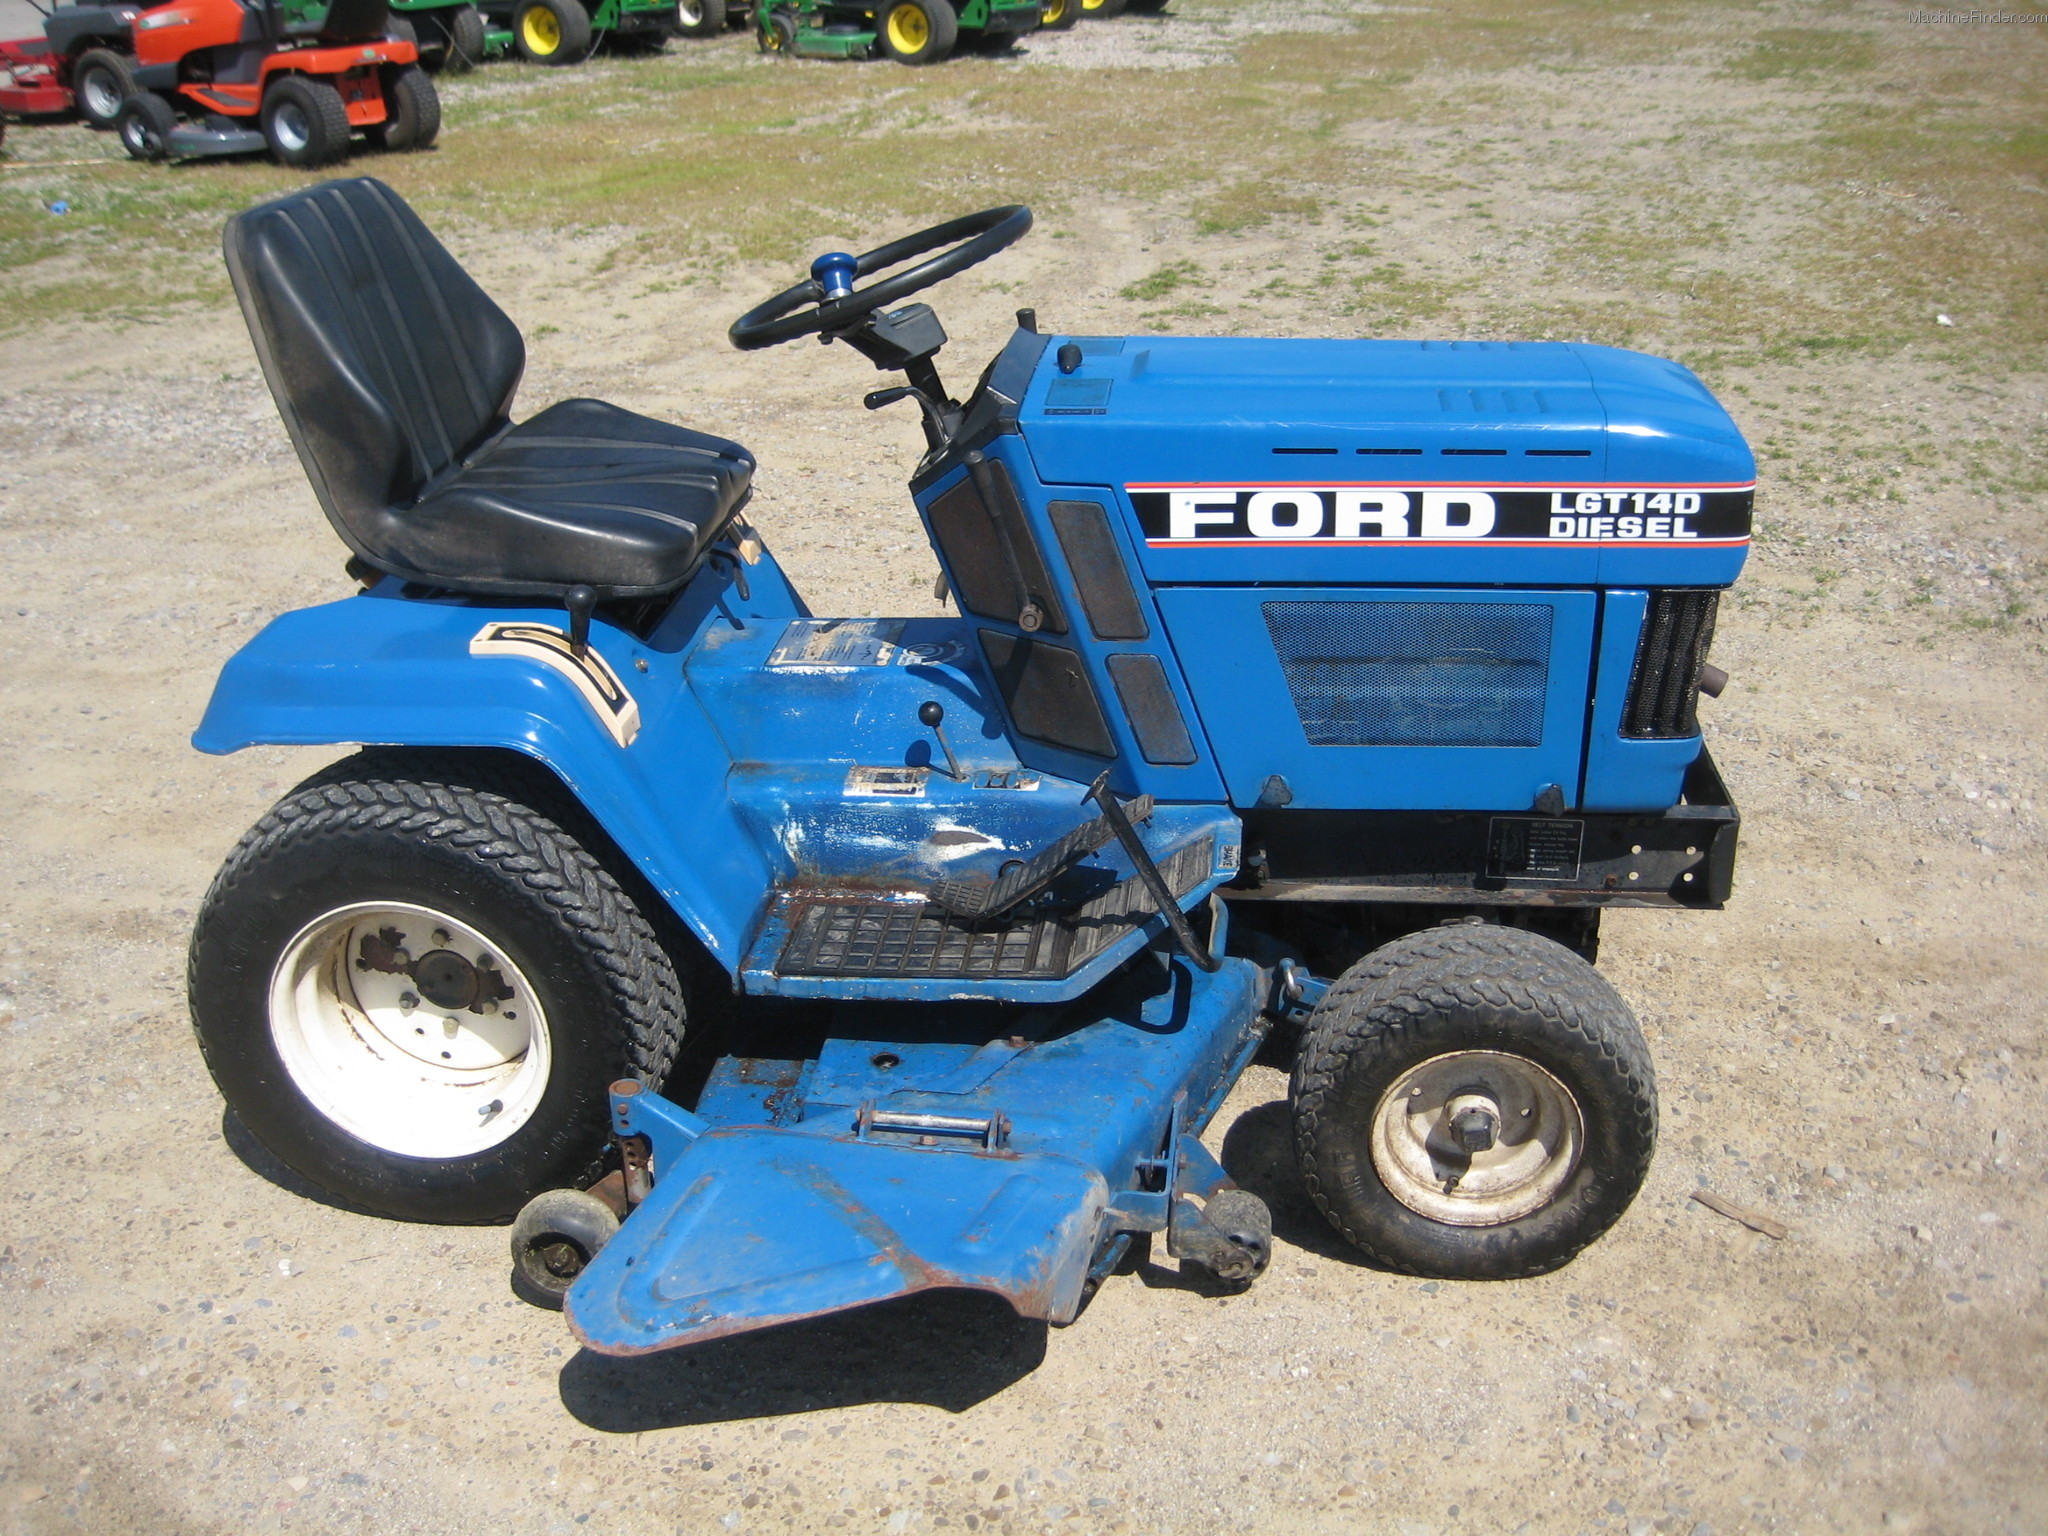 Ford Tractor Accessories : Ford lawn tractor parts manual